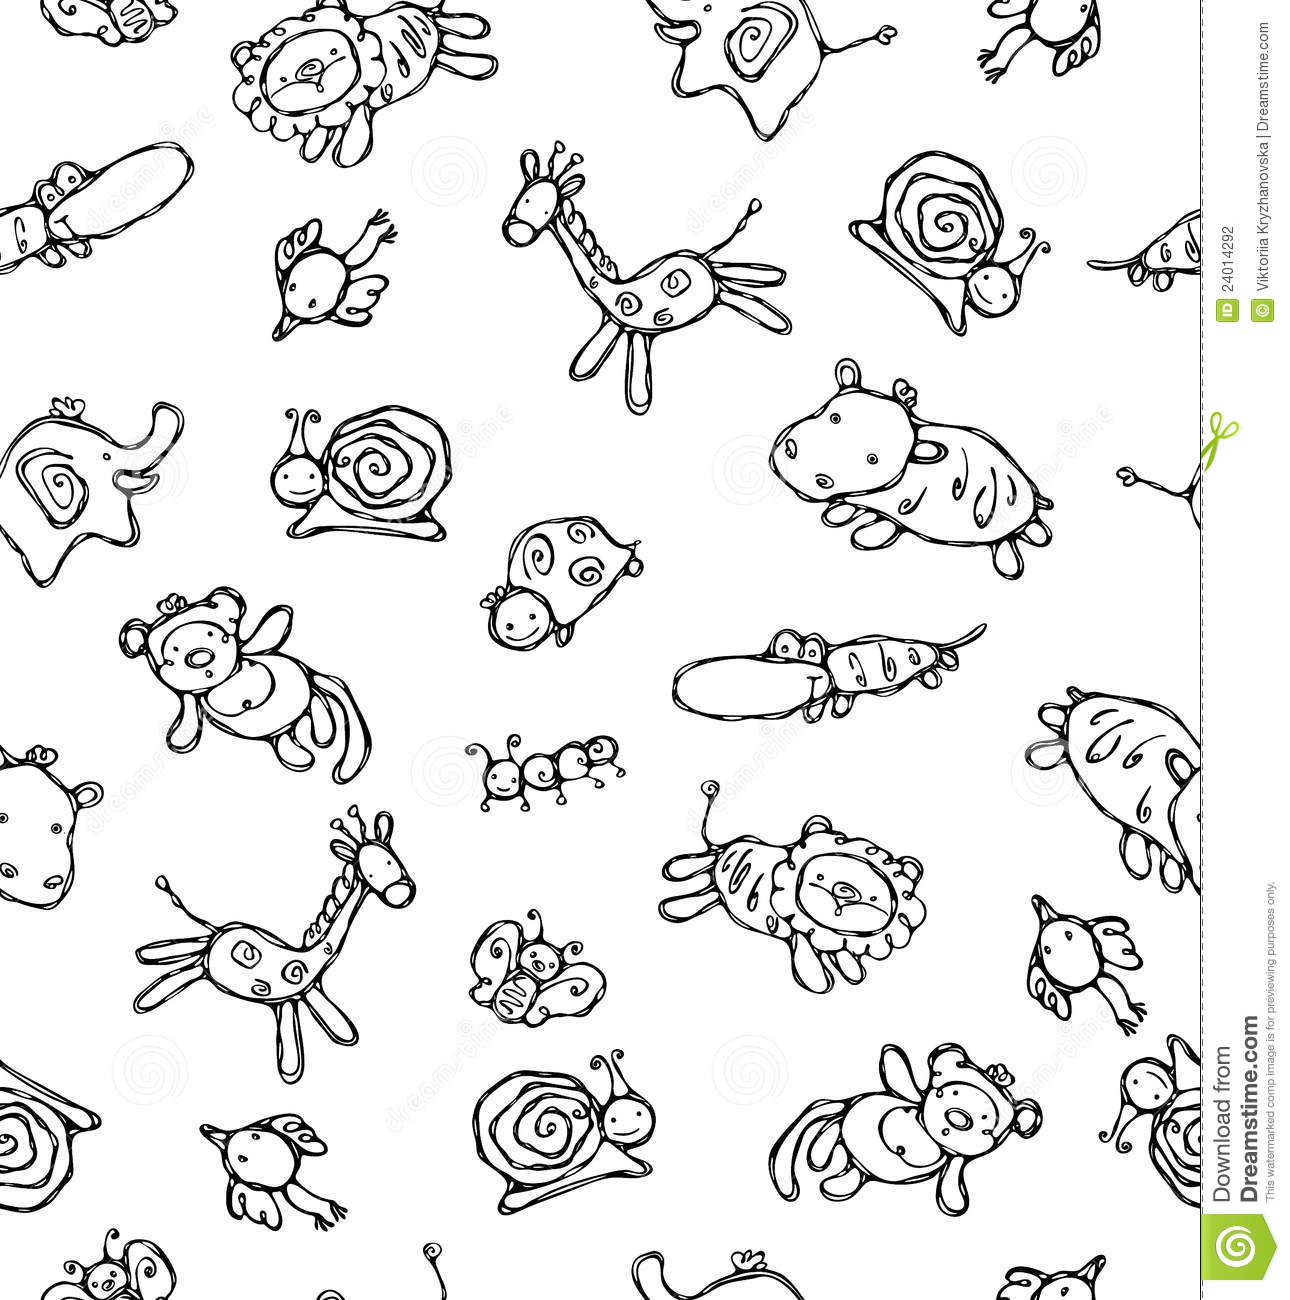 Cute simple designs to draw the image for Cute easy patterns to draw